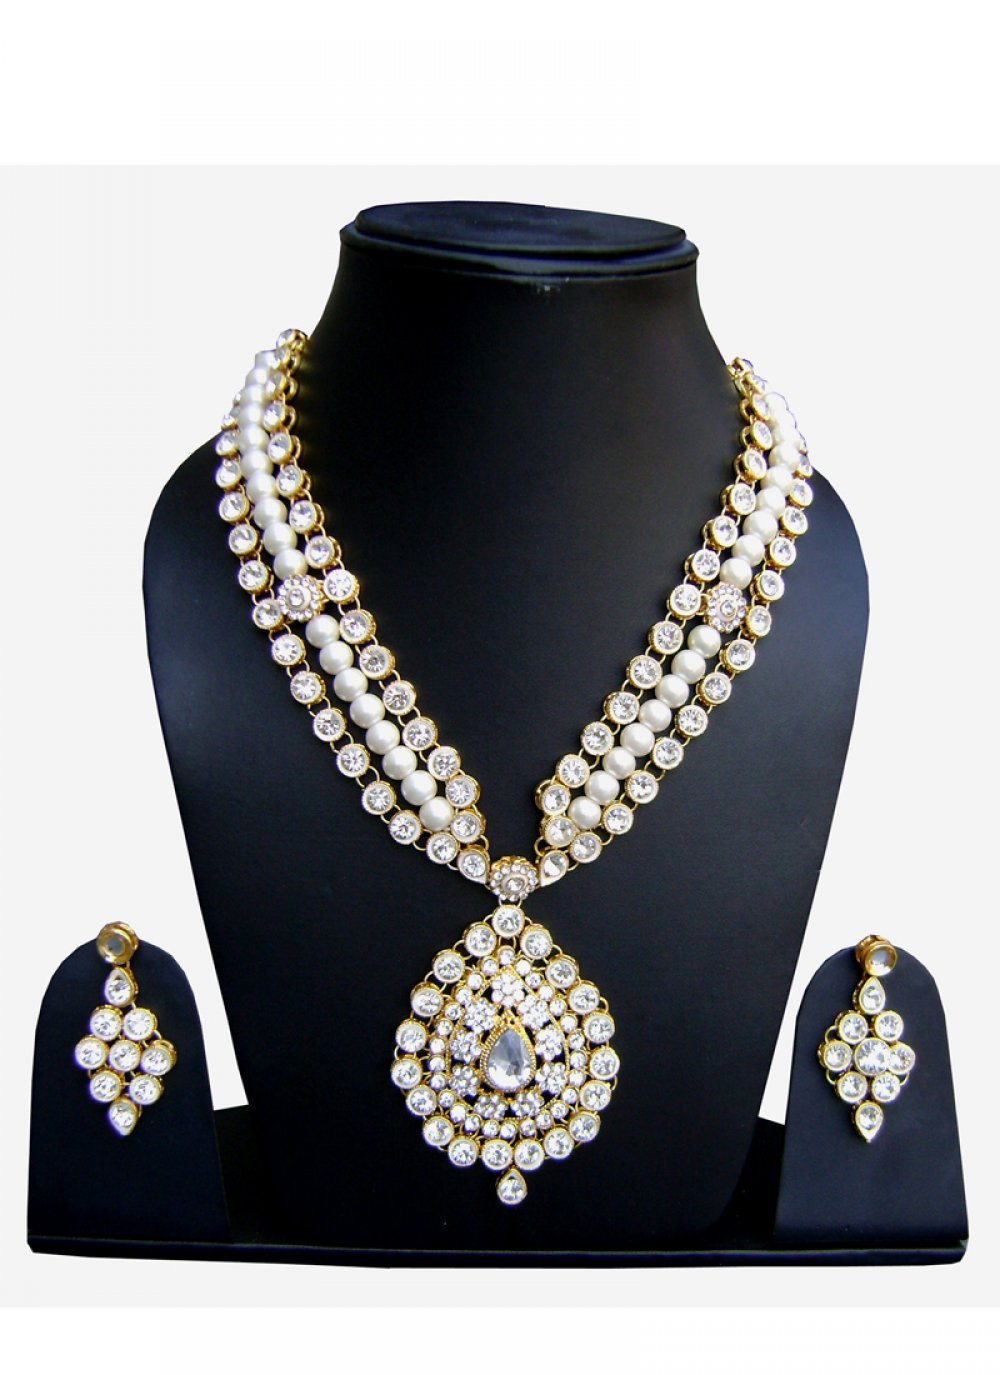 Stone Work Necklace Set in Gold and White